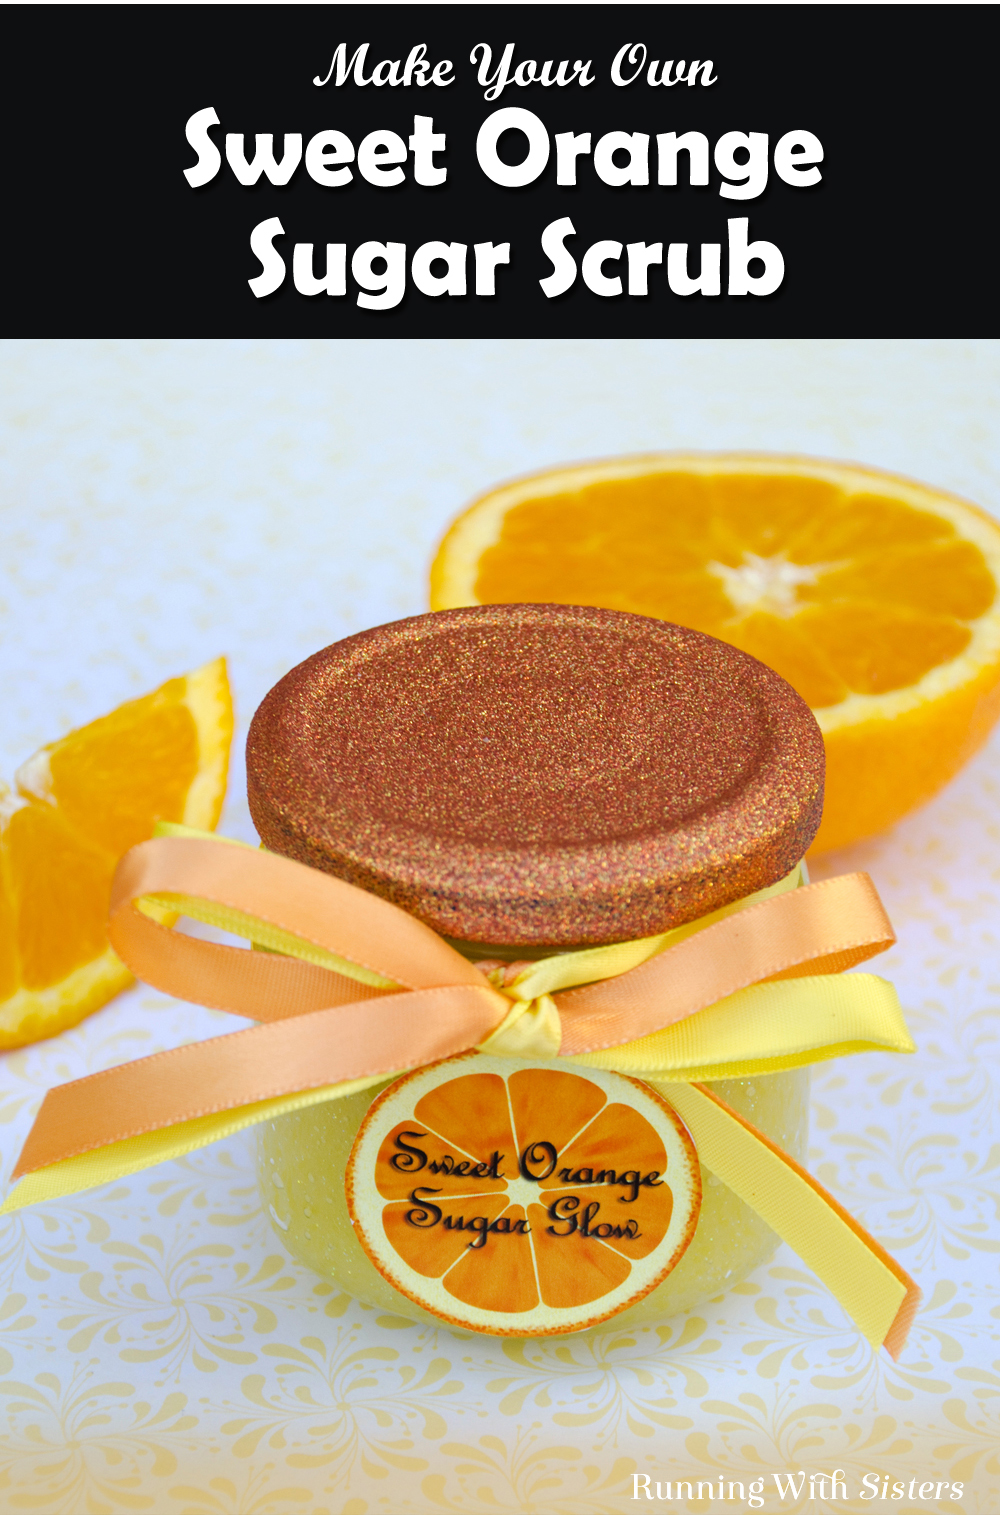 Make a pretty orange sugar scrub pretty this glittery sugar scrub with a cute printable label. The sugar blend inside really sparkles!